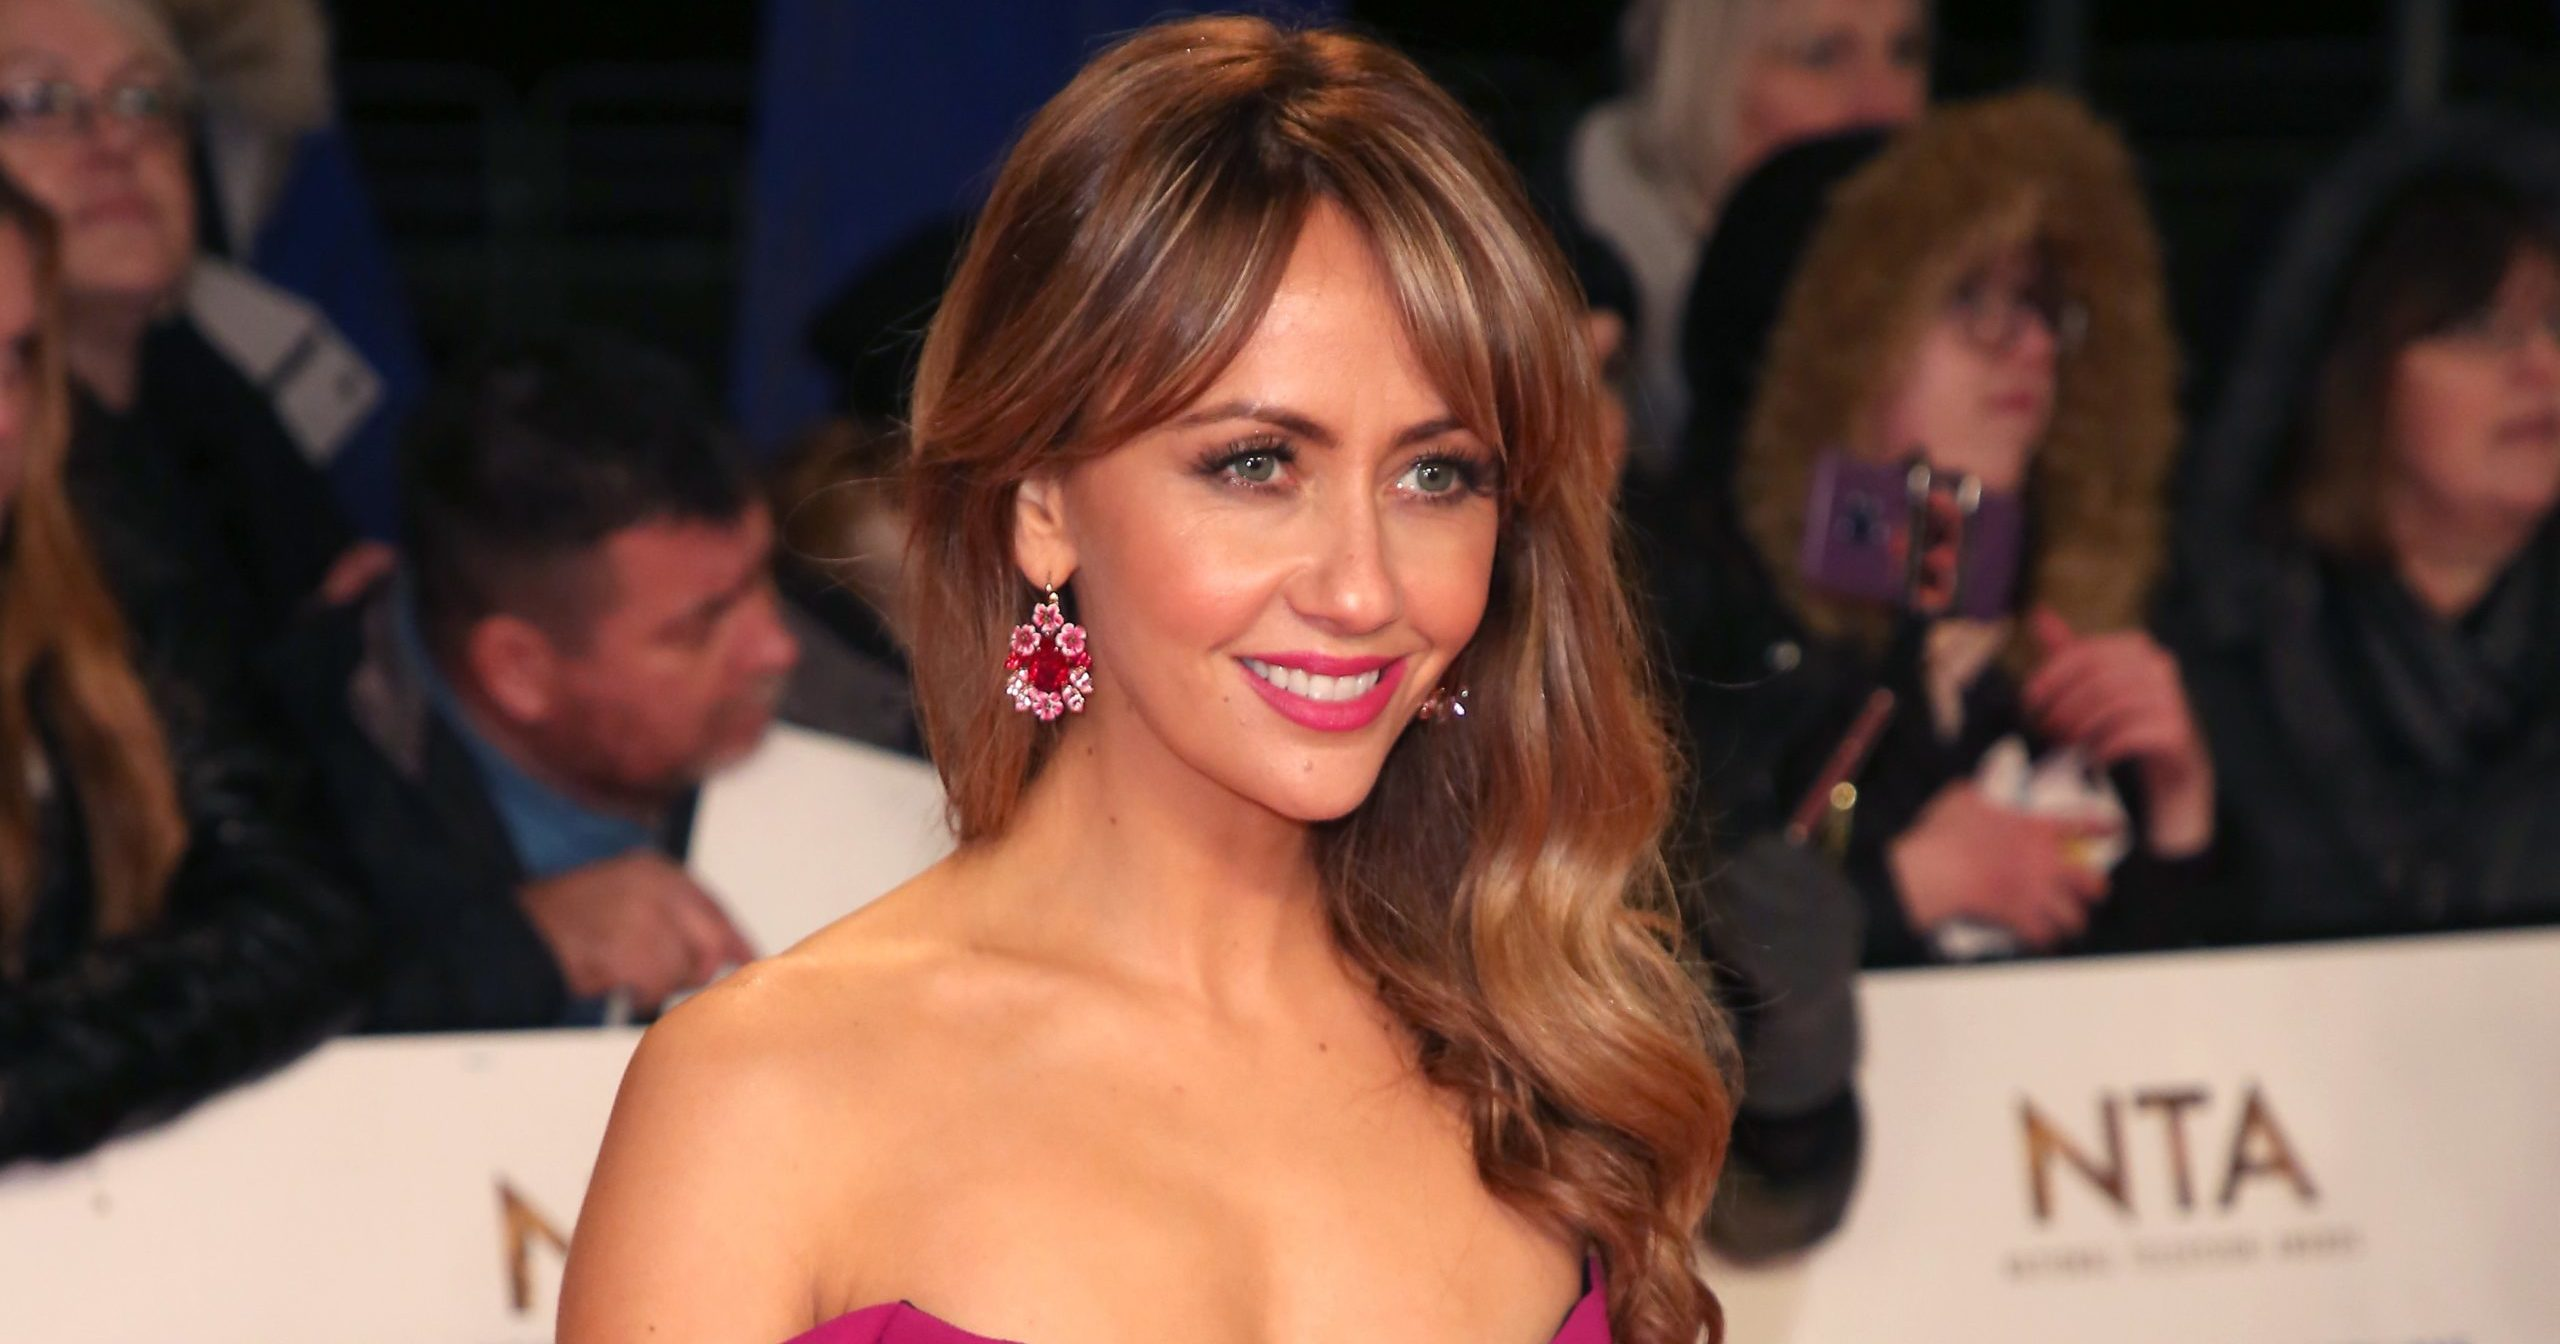 Coronation Street's Samia Longchambon shares family picture from VE Day picnic